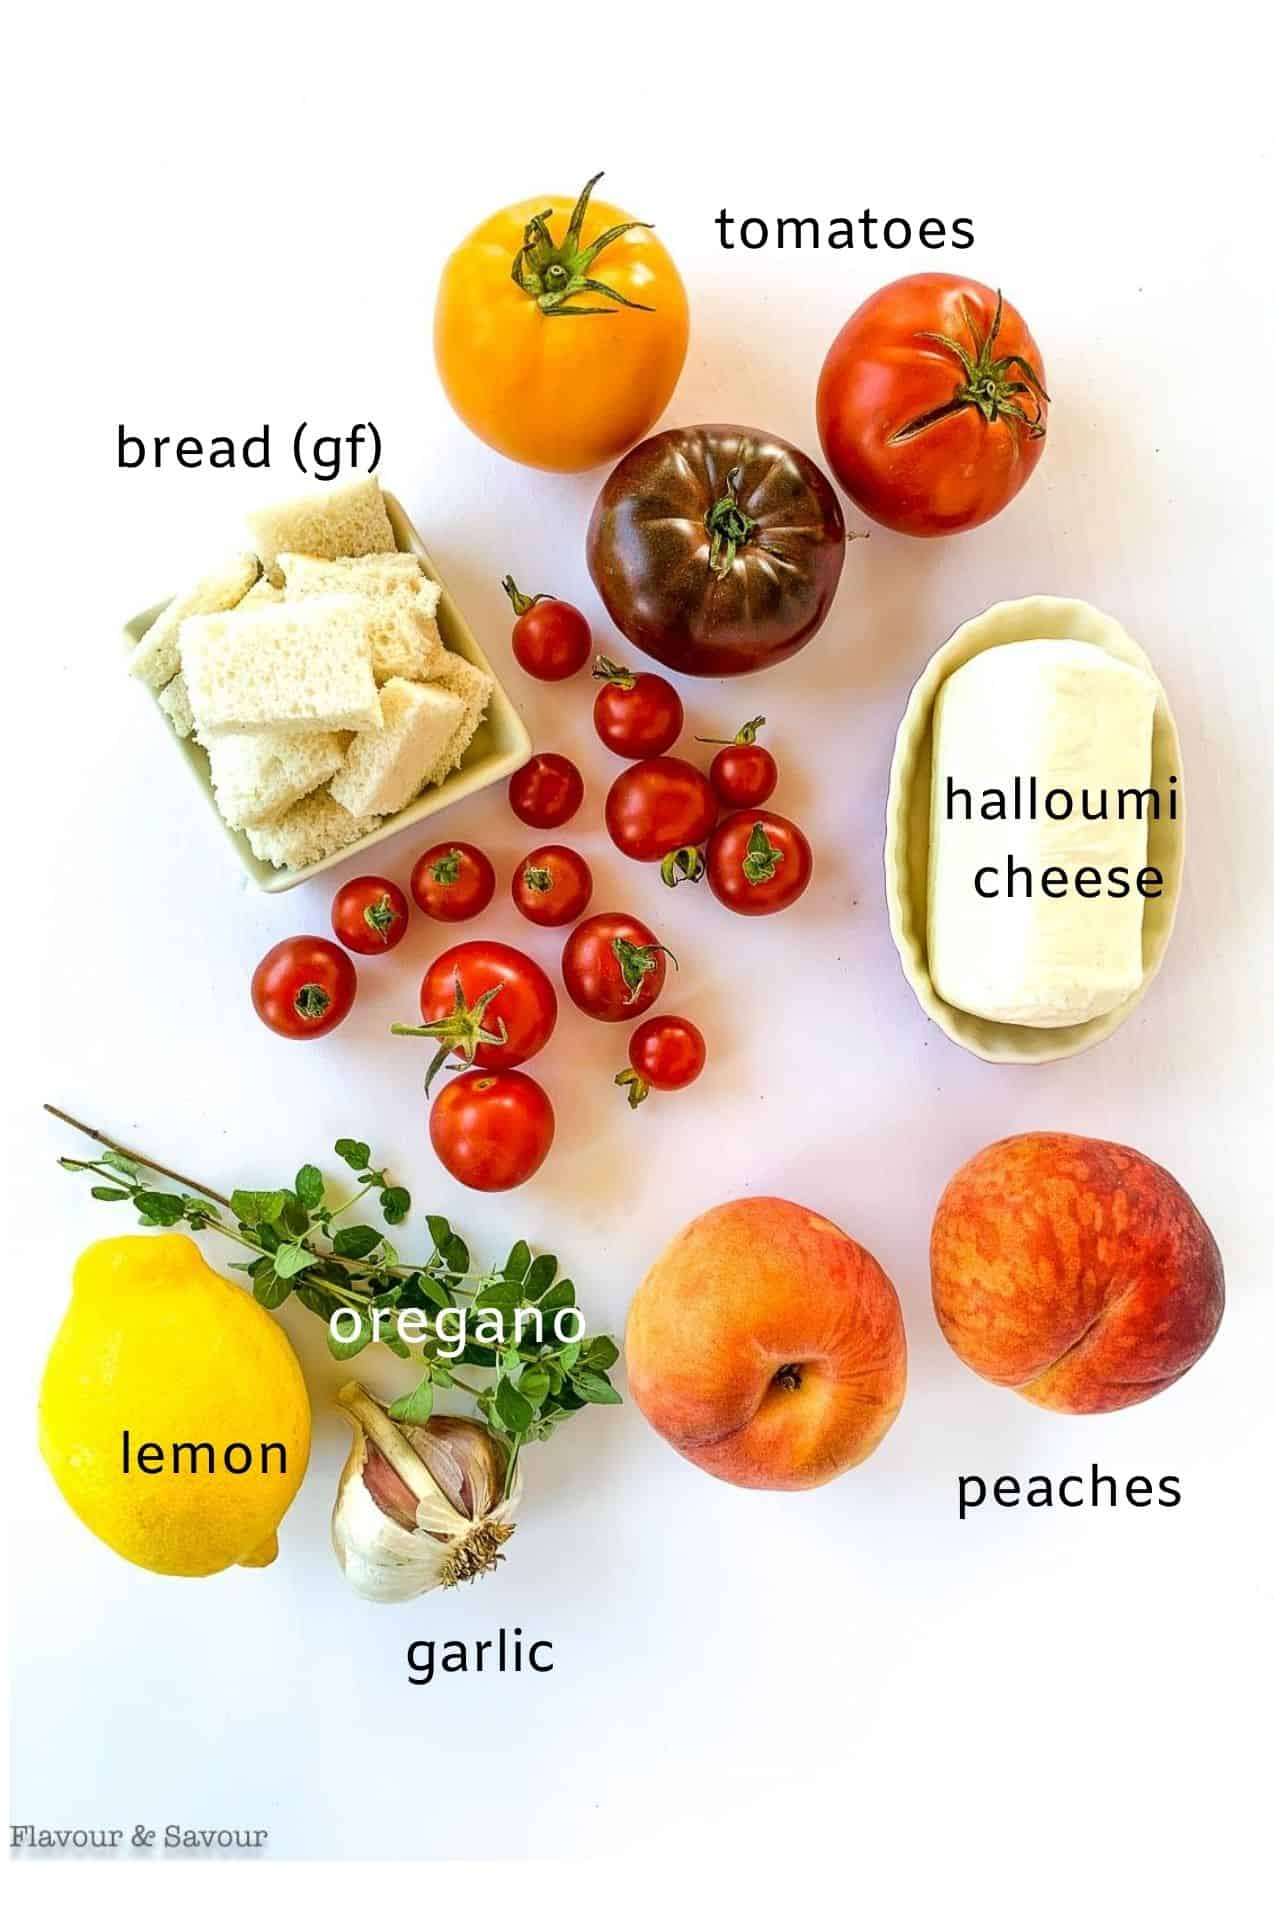 Labeled ingredients image for Grilled Halloumi Peach and Tomato Salad